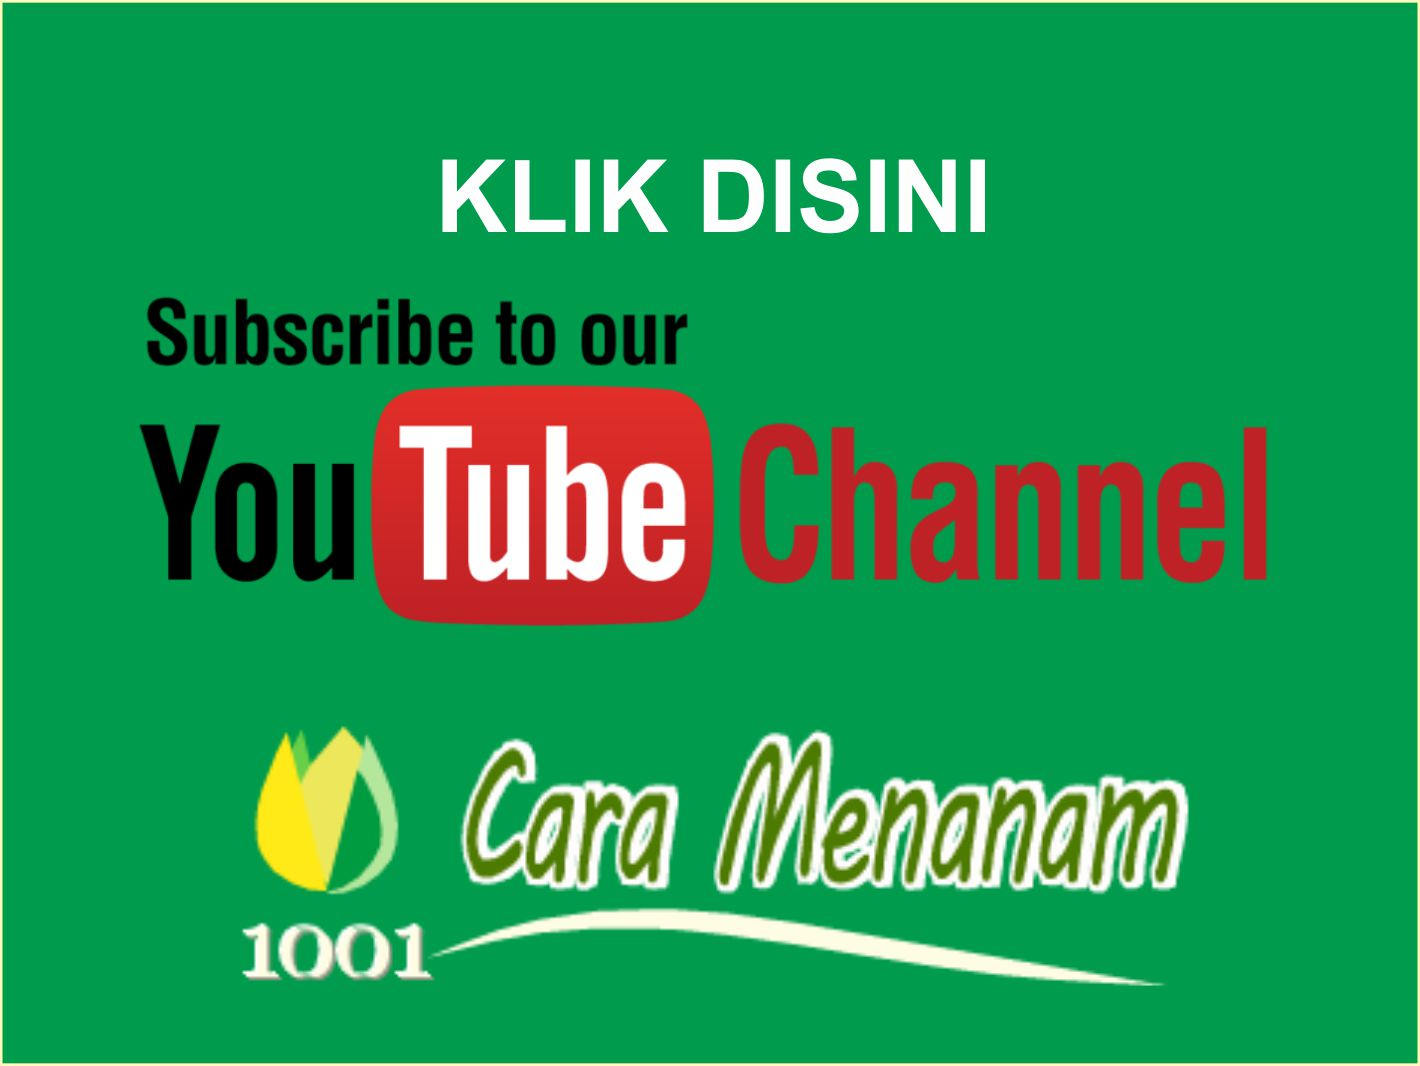 Video 1001 Cara Menanam